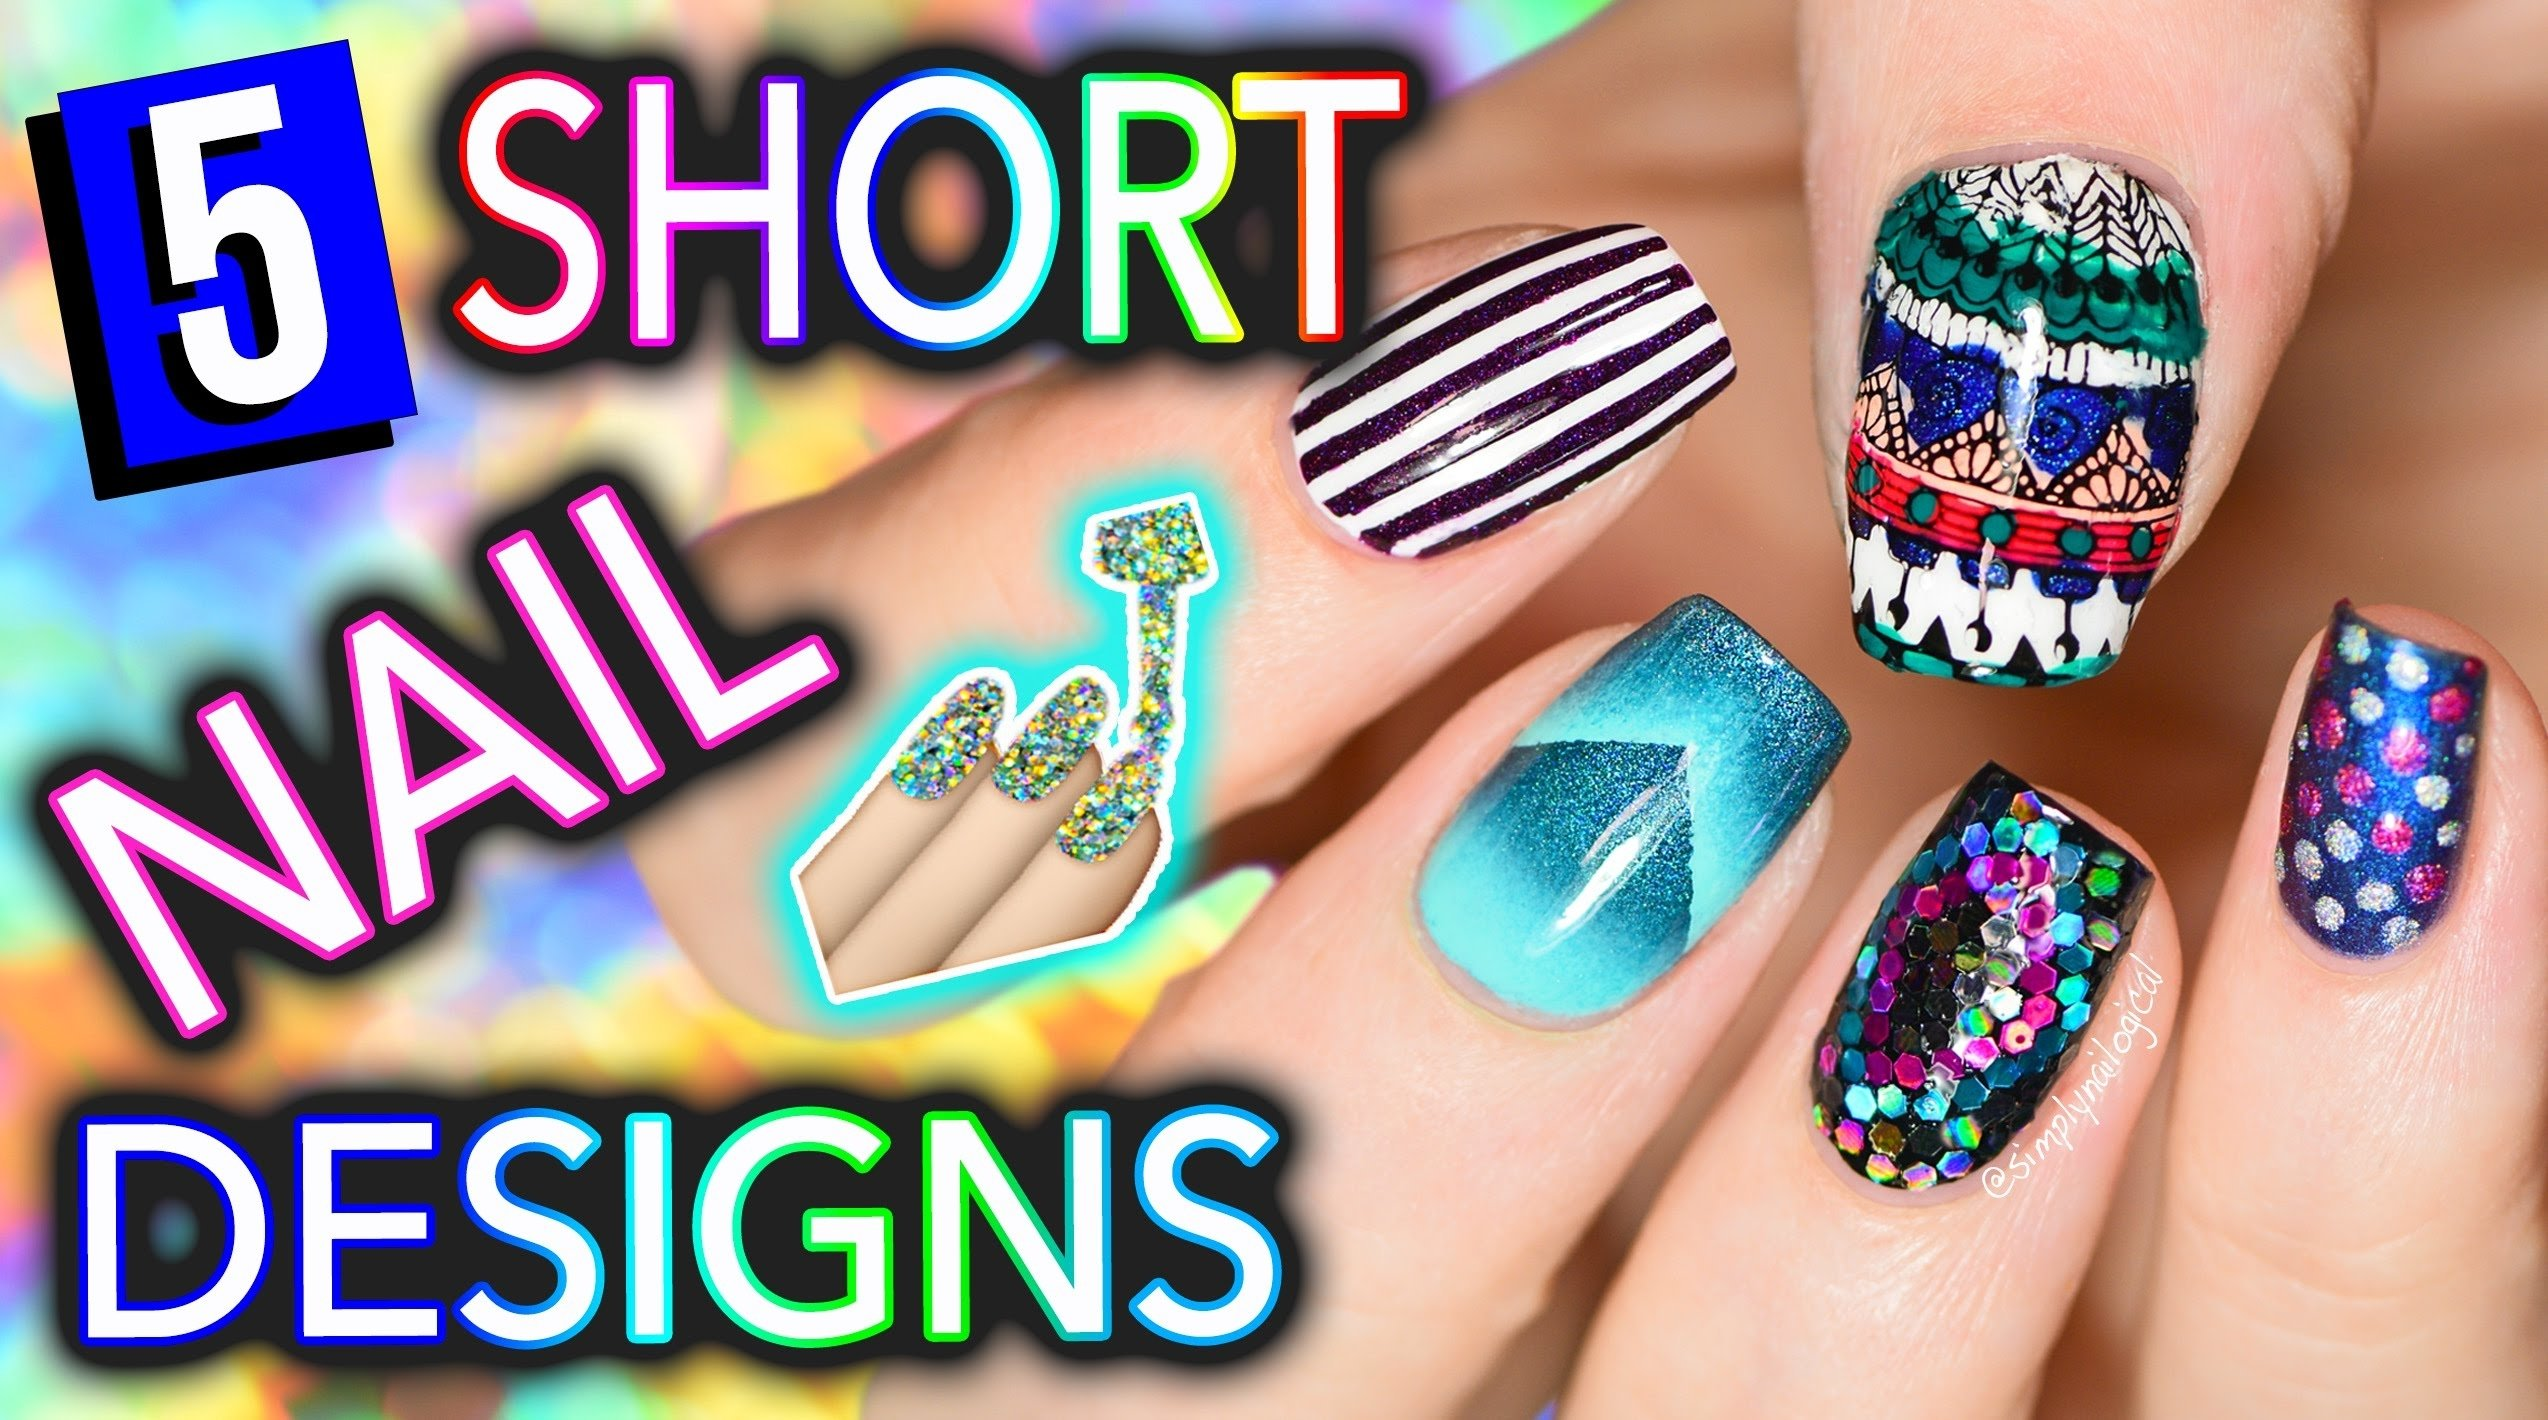 10 Attractive Easy Nail Ideas For Short Nails 5 easy nail art designs for short nails holosexuals part 1 1 2020